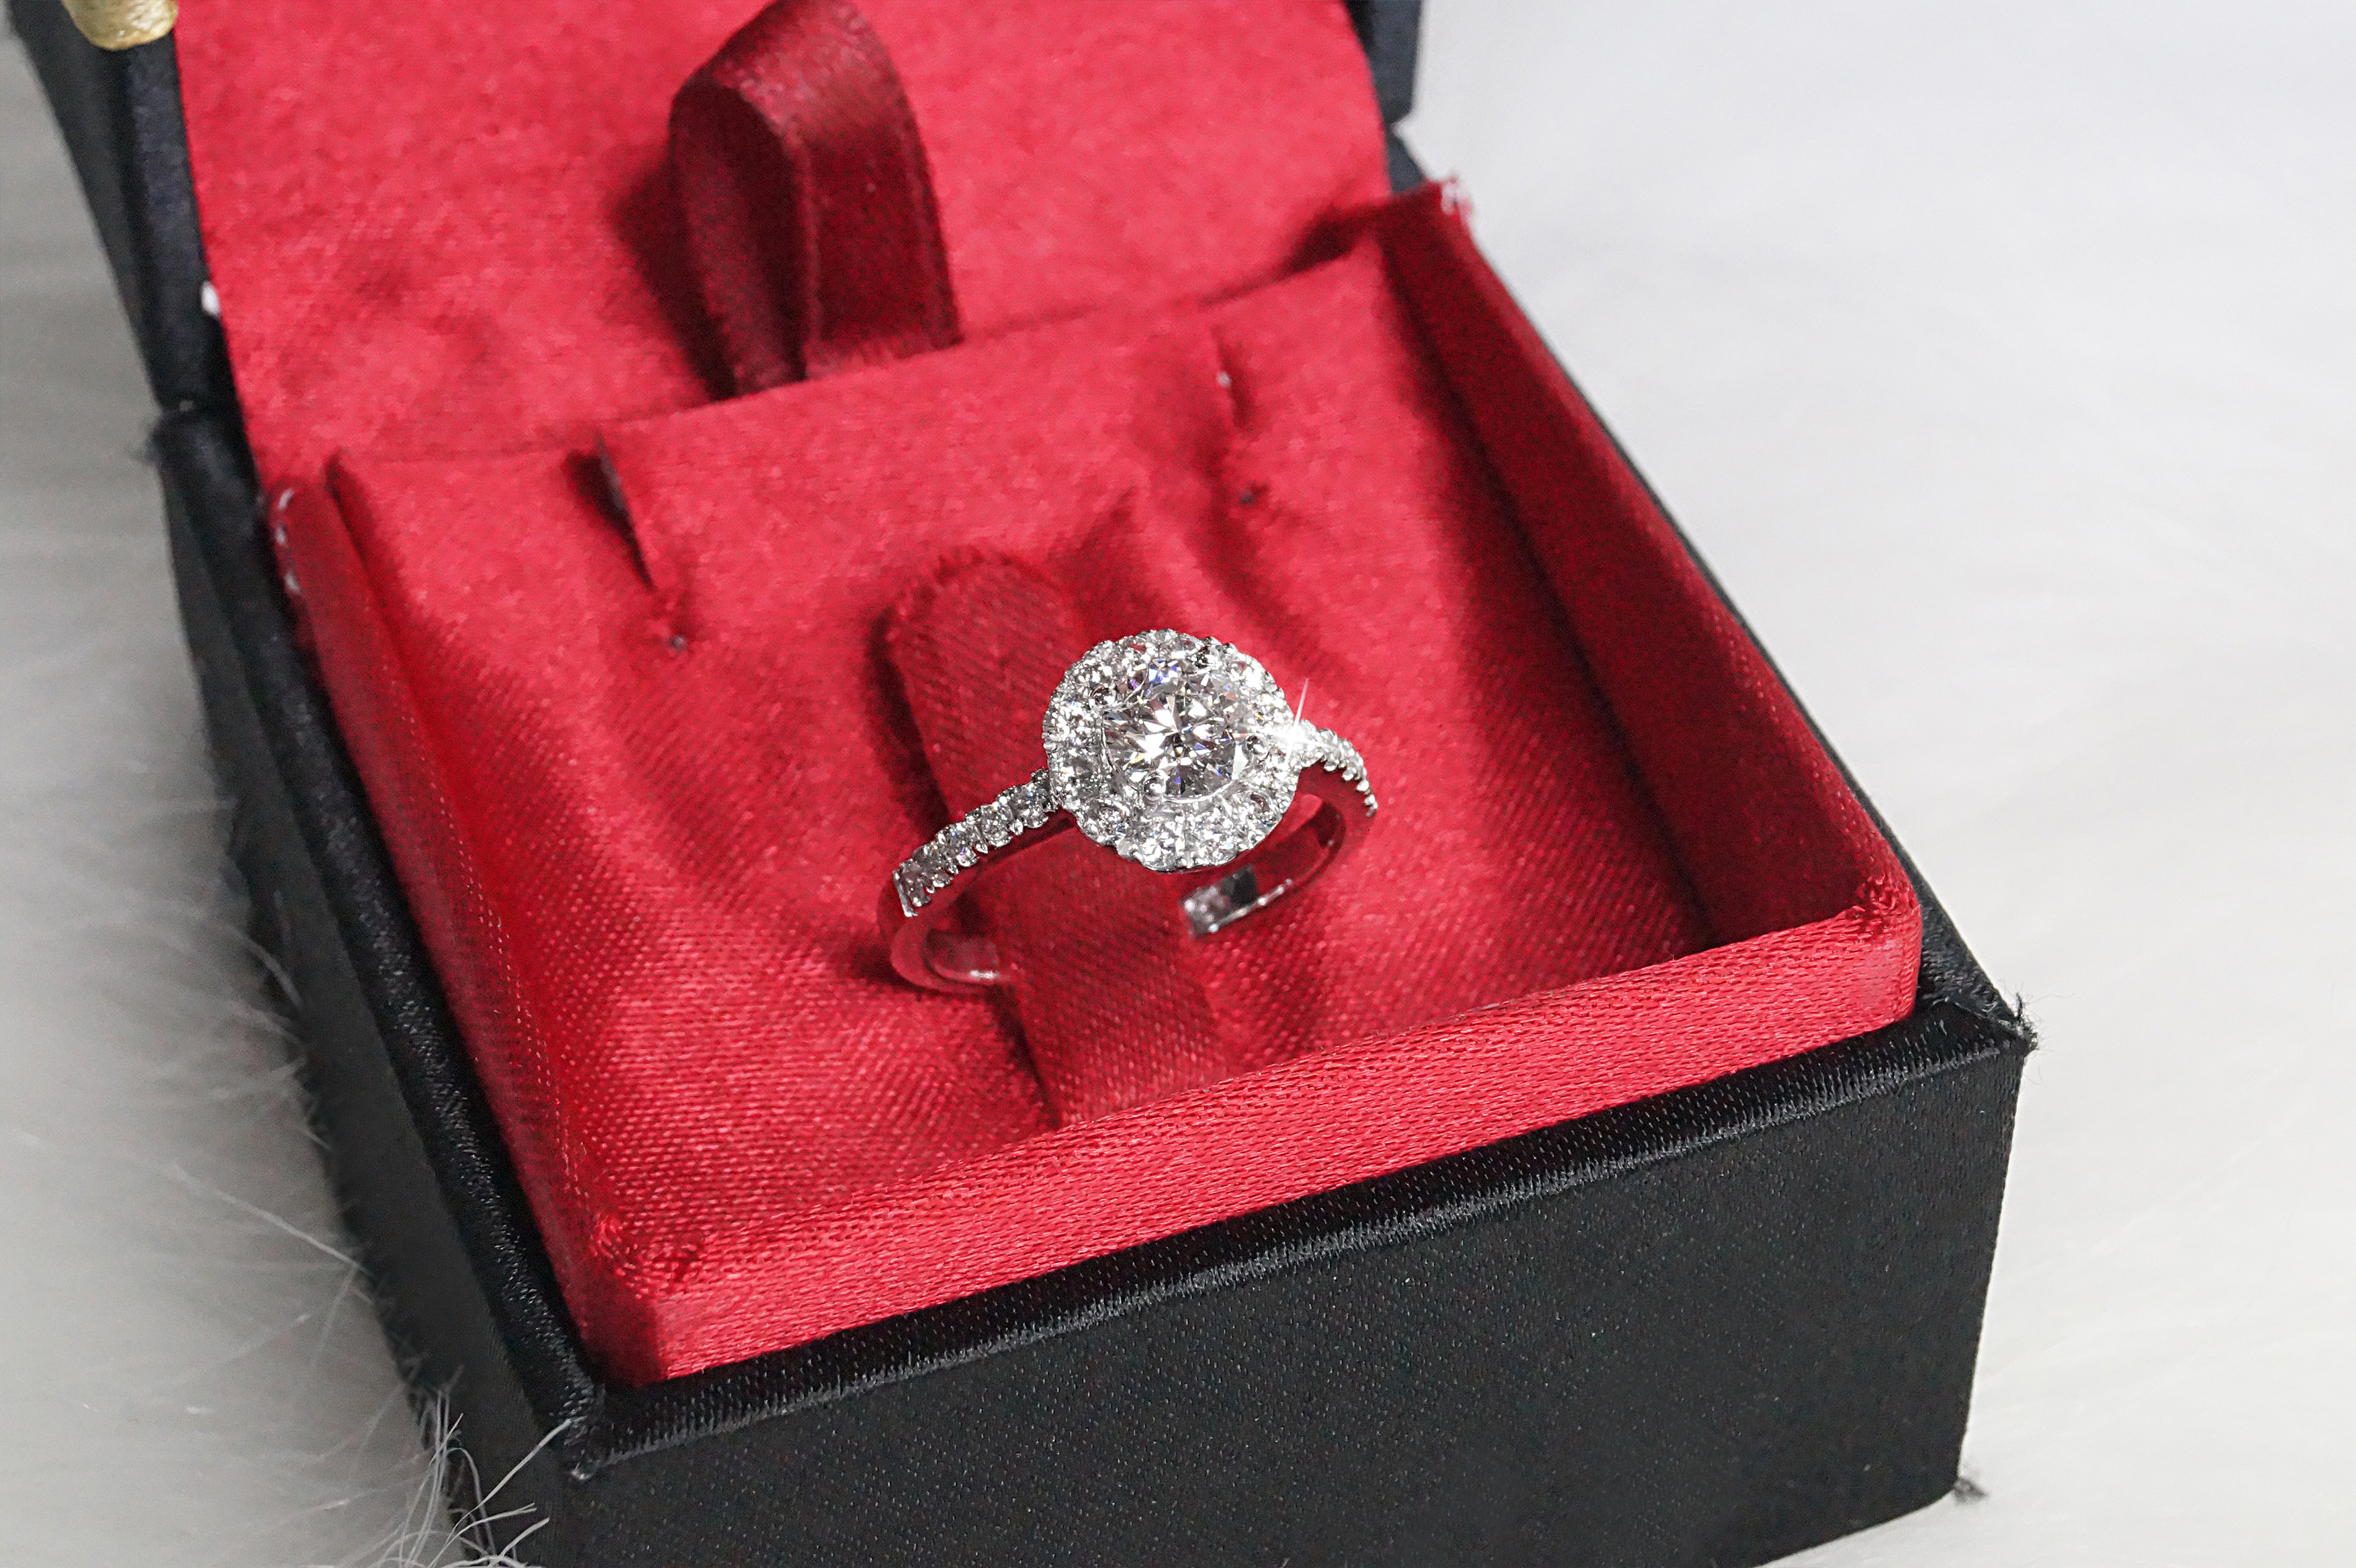 Customer's Nando Proposal Ring